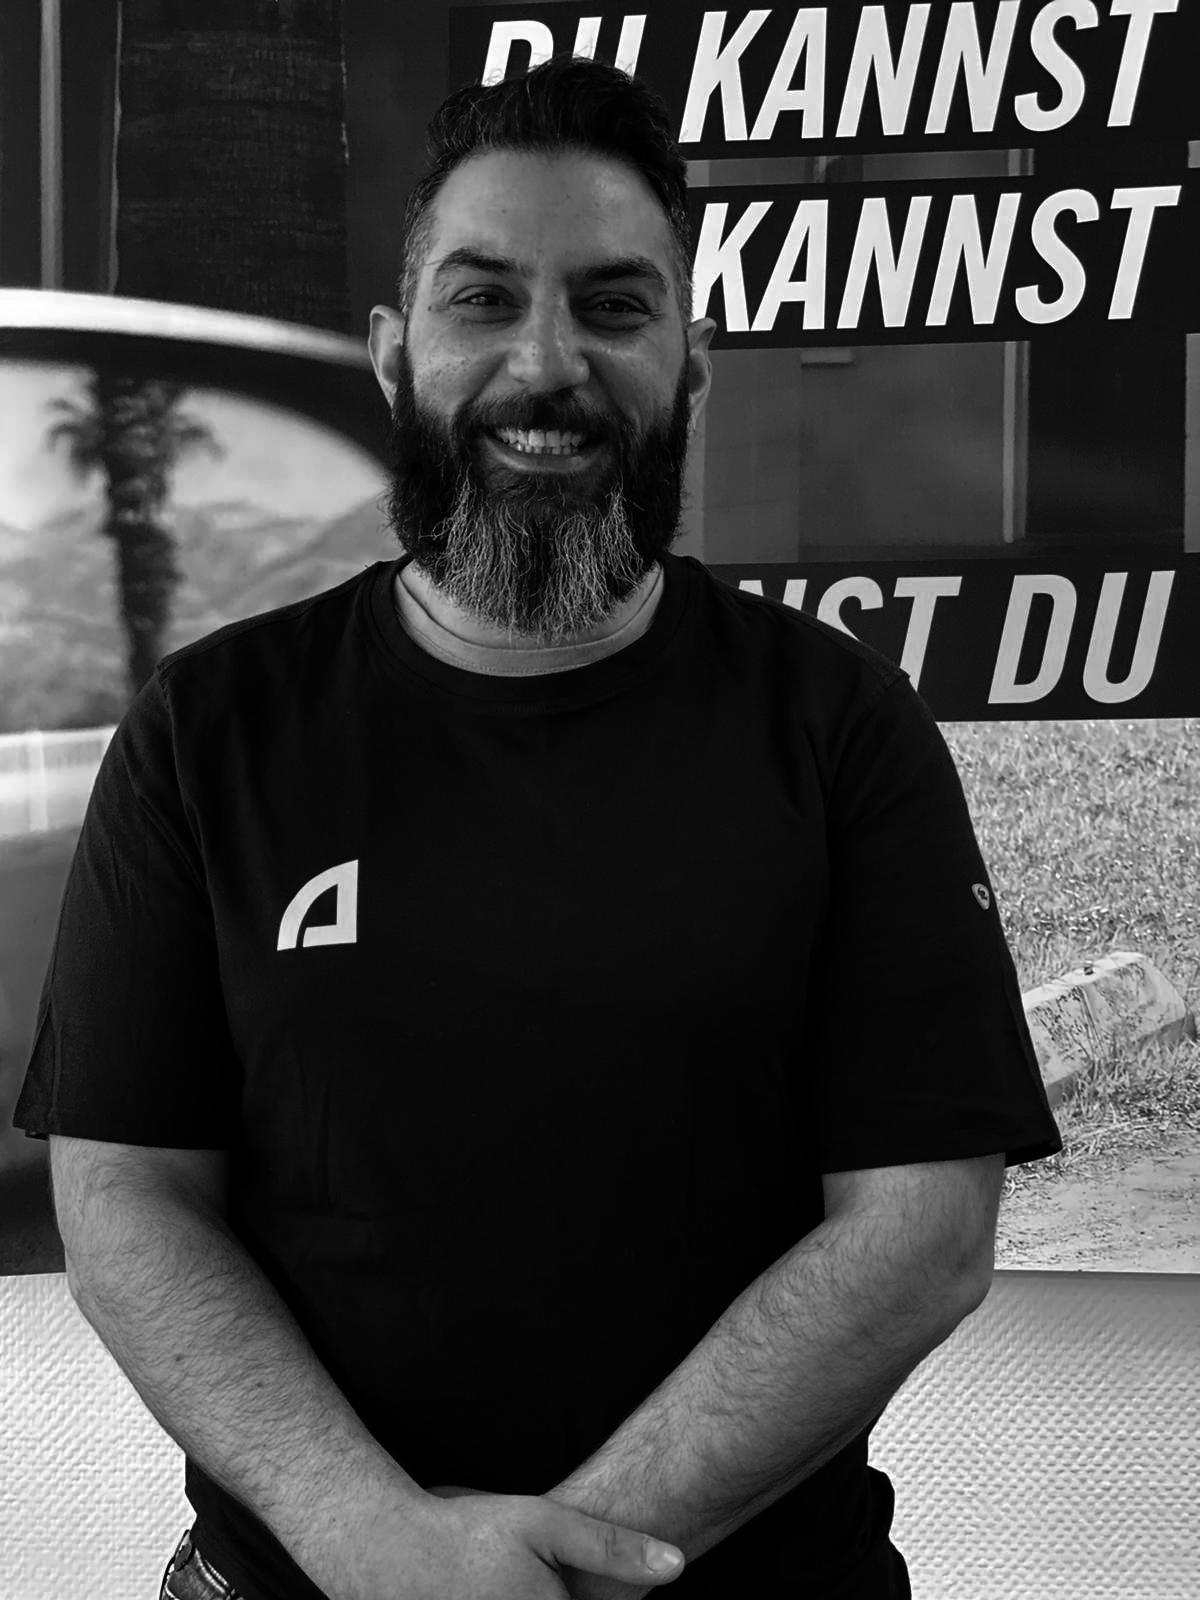 de.academy.fahrschulen.model.instructor.Instructor@a084